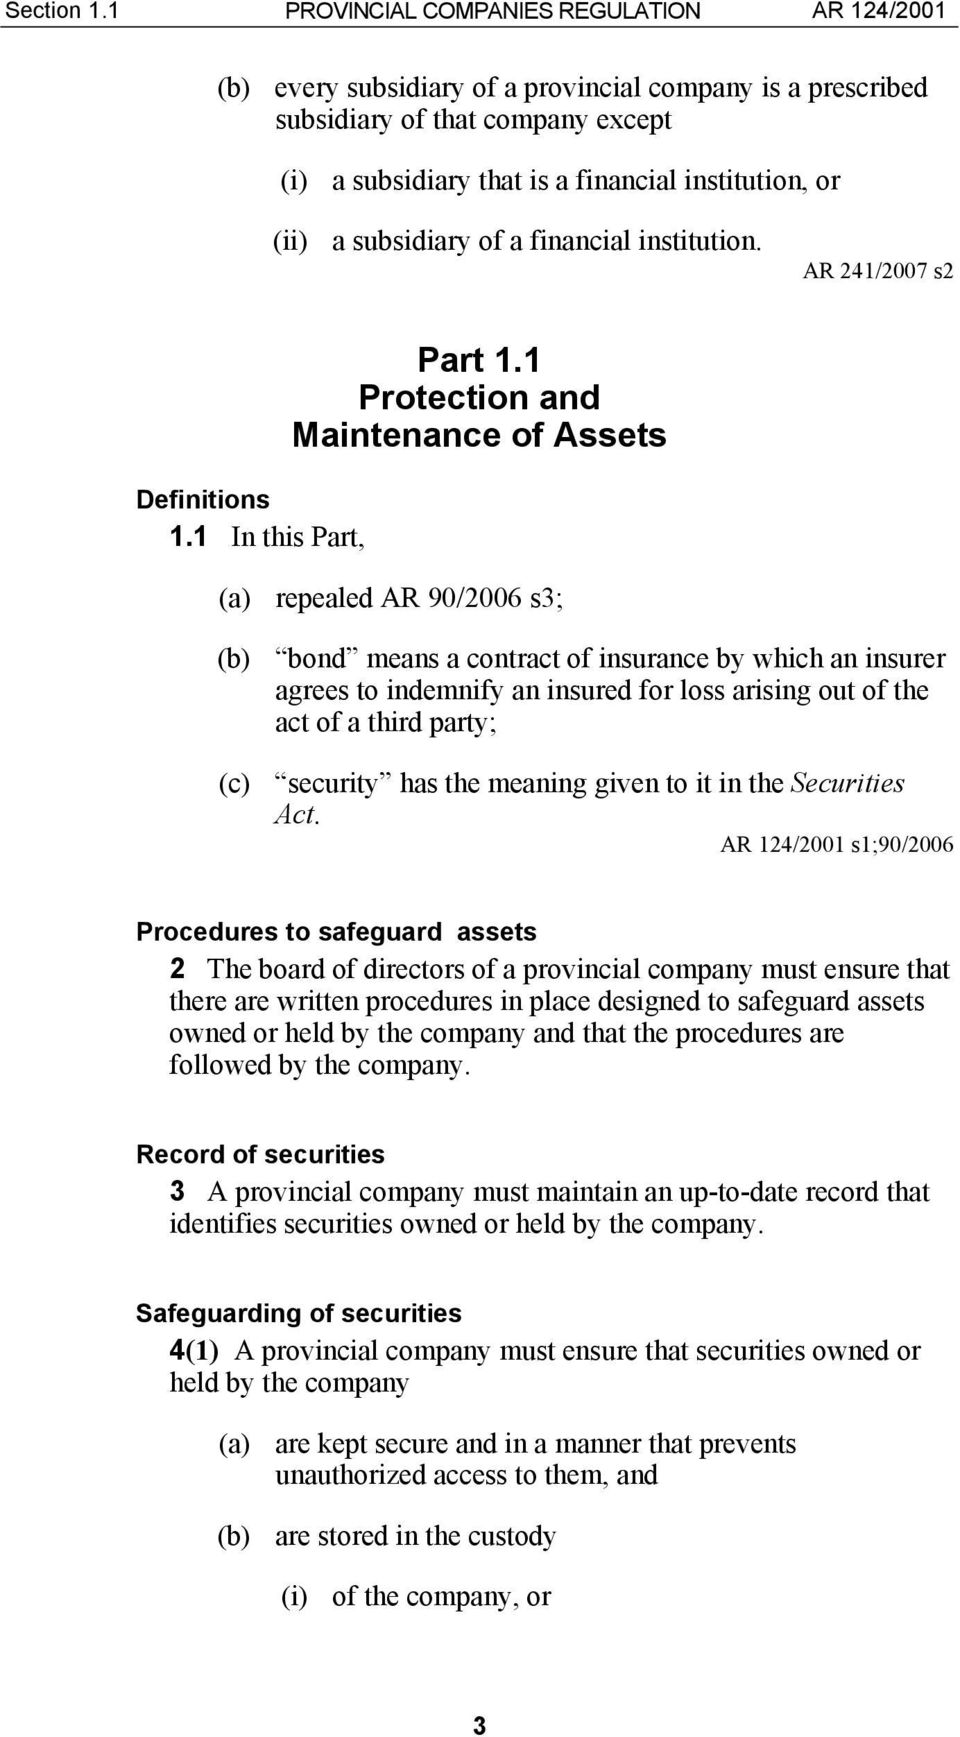 a subsidiary of a financial institution. AR 241/2007 s2 Definitions 1.1 In this Part, Part 1.